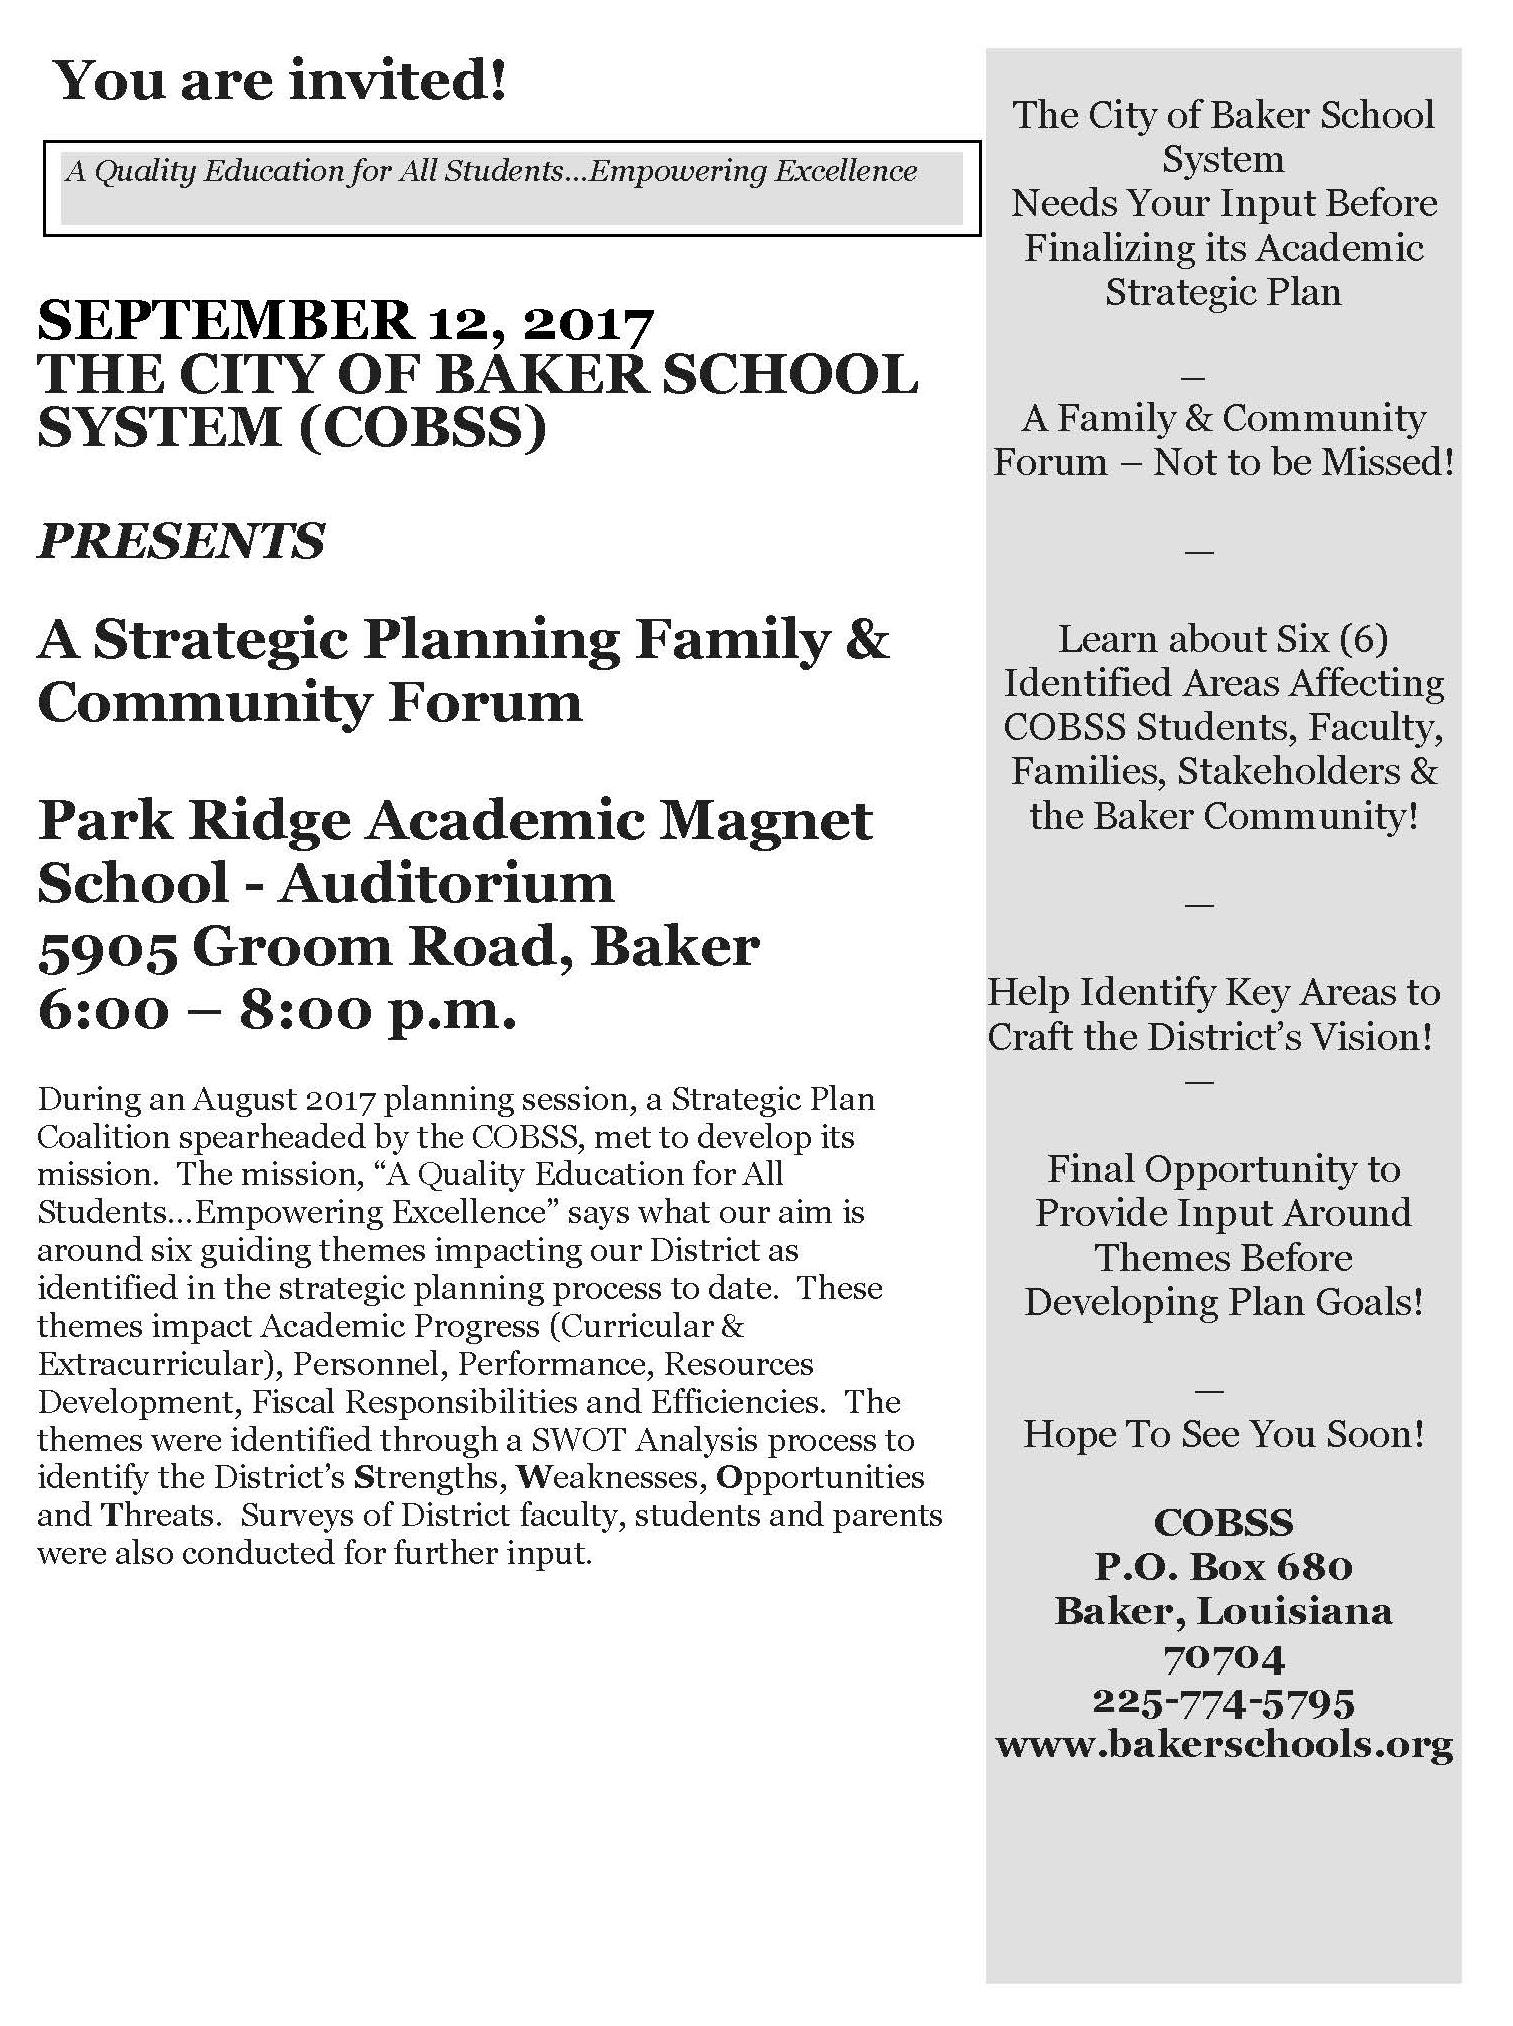 Photo of a public invitation to a forum on September 12, 2017, 6 p.m. at Park Ridge